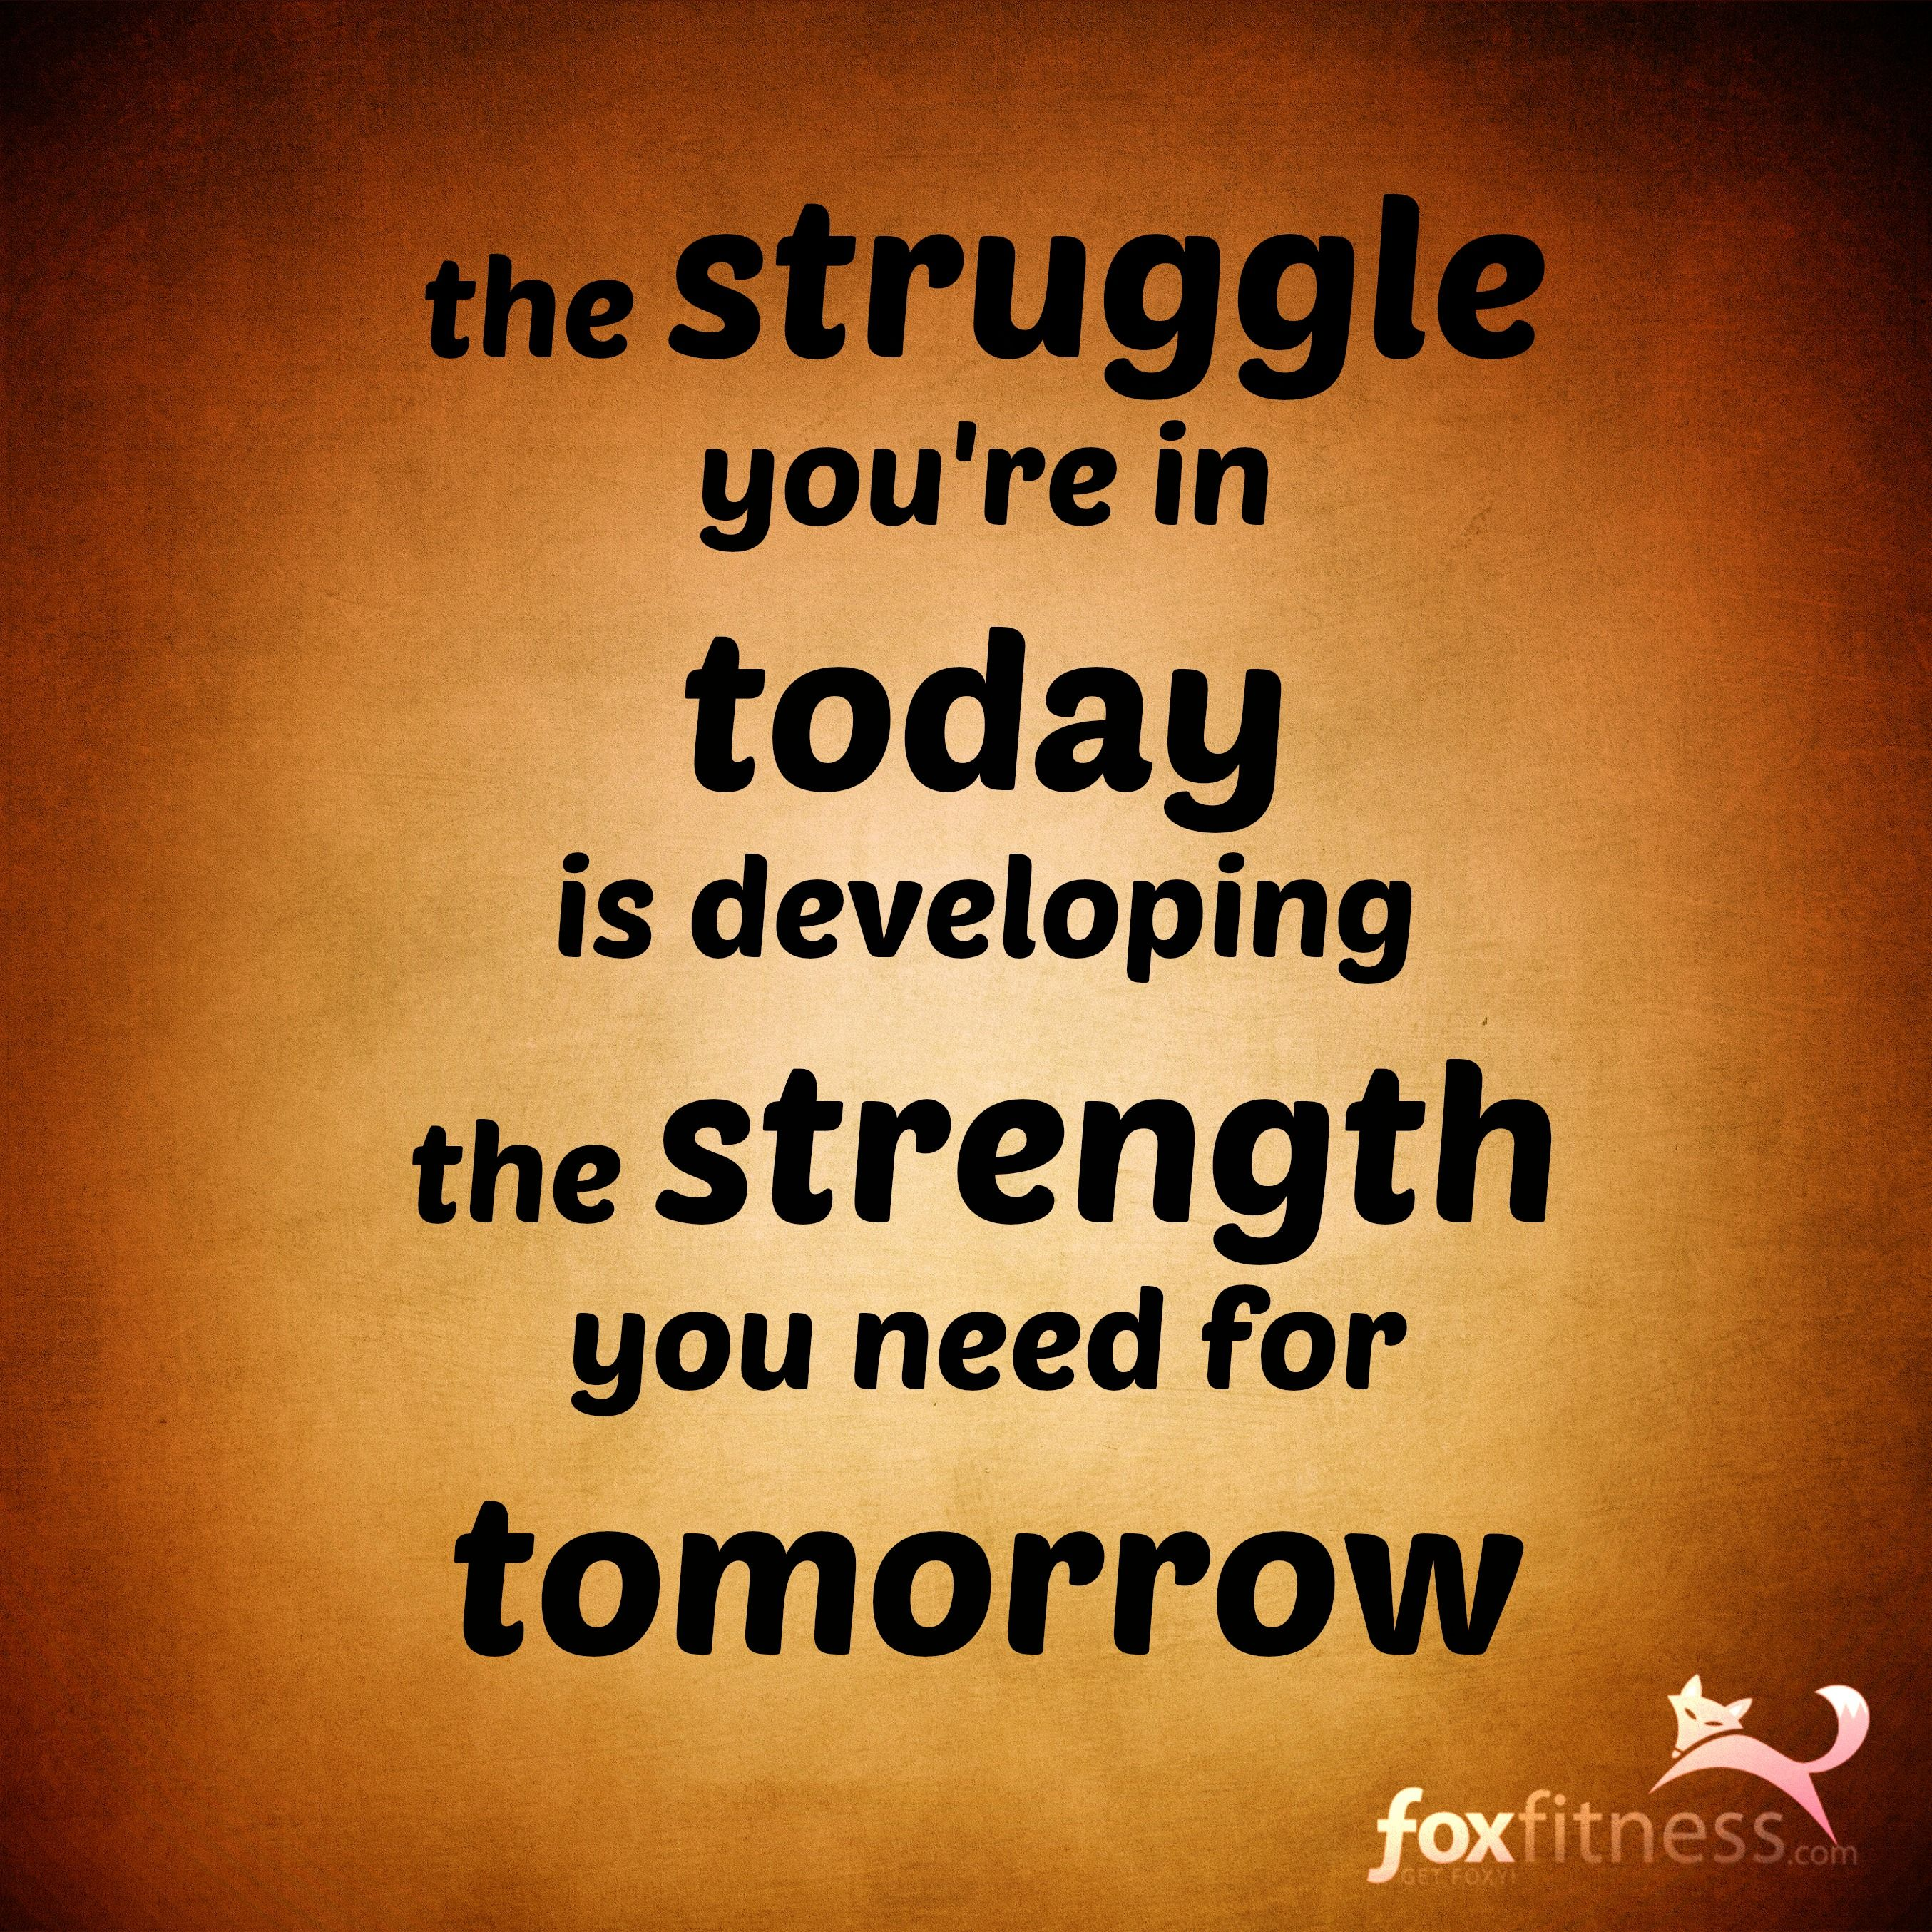 Developing Strength Motivational Quote: The Struggle You're In Today Is Developing The Strength